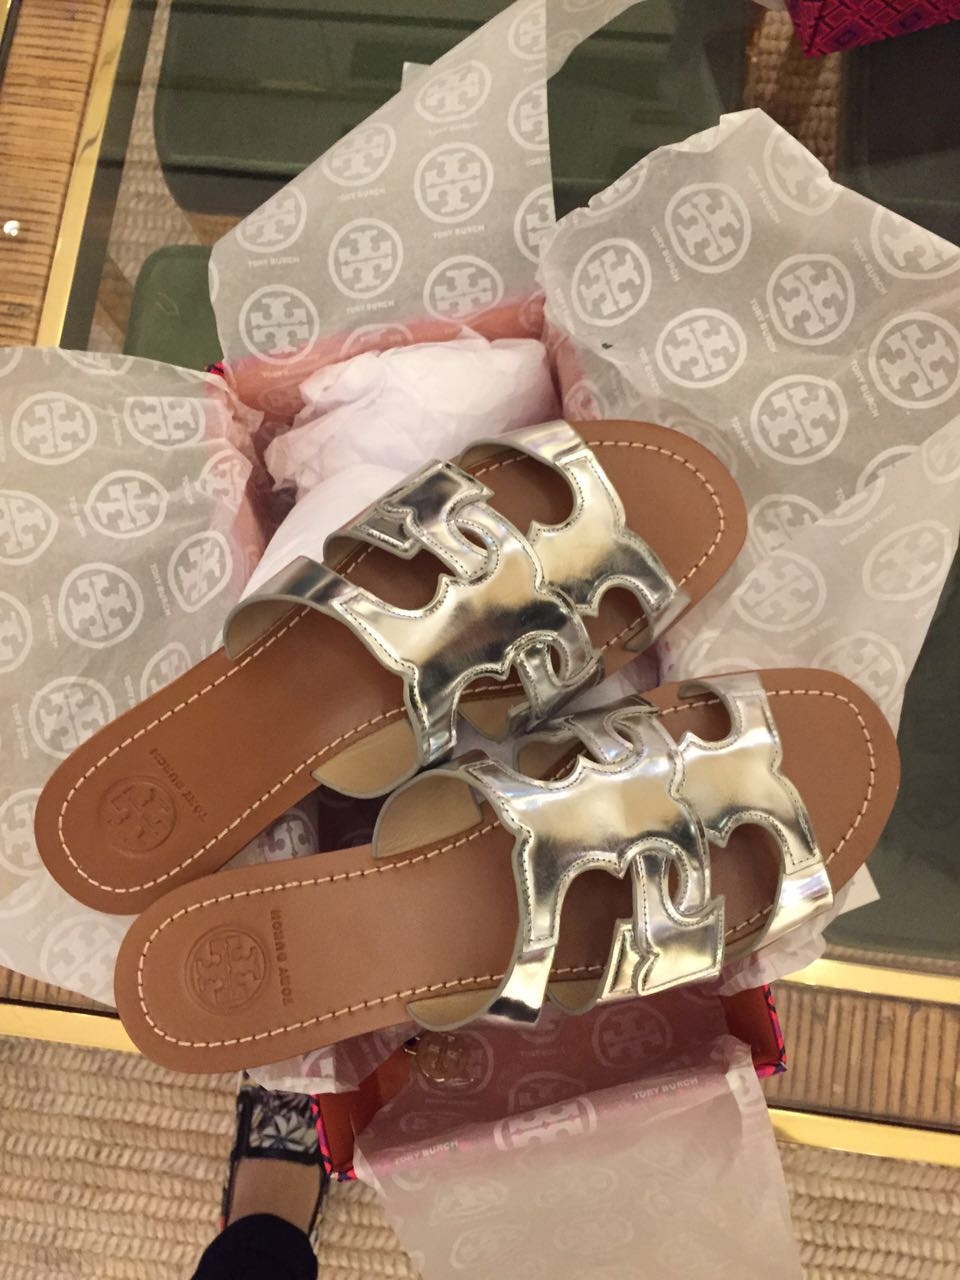 美国留学生代购Tory Burch \u0027Anchor T\u0027 Leather Slide平底拖鞋